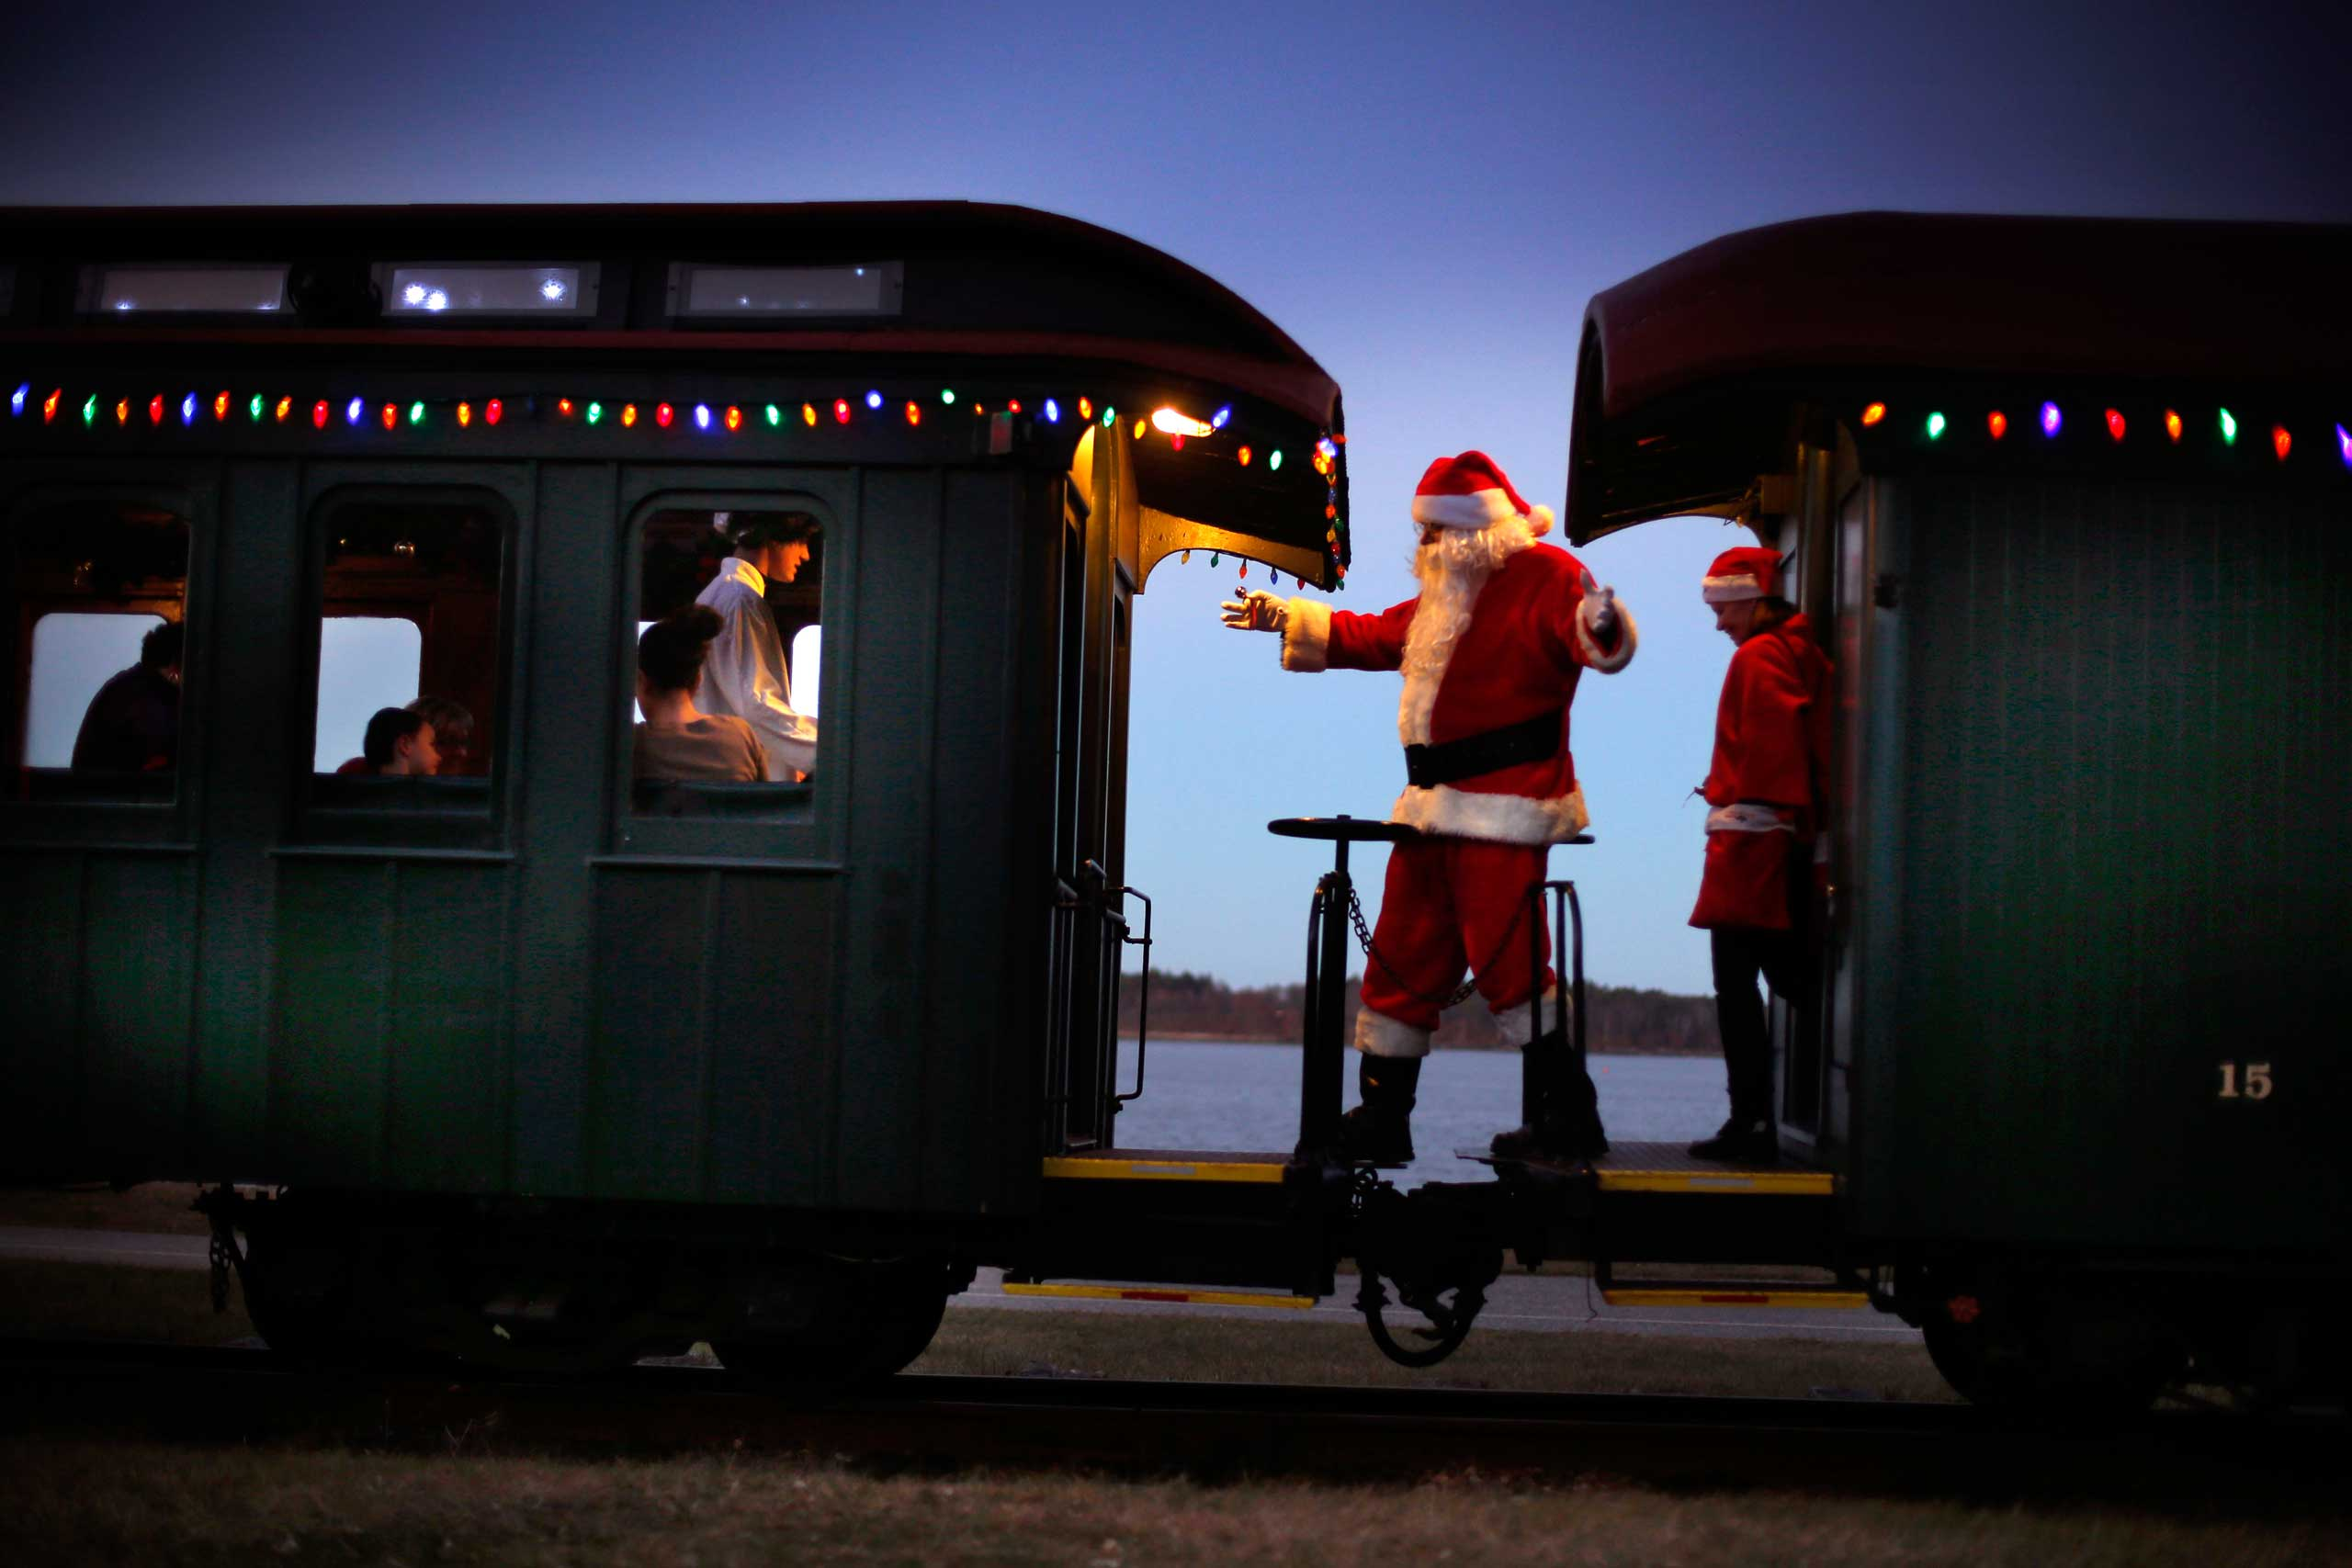 A man portraying Santa Claus moves between cars while greeting passengers during a Polar Express holiday train ride to the  North Pole  on the Maine Narrow Gauge Railroad, Friday, Dec. 19, 2014, in Portland, Maine. The Polar Express is the largest annual fundraiser for the railroad's museum. (AP Photo/Robert F. Bukaty)